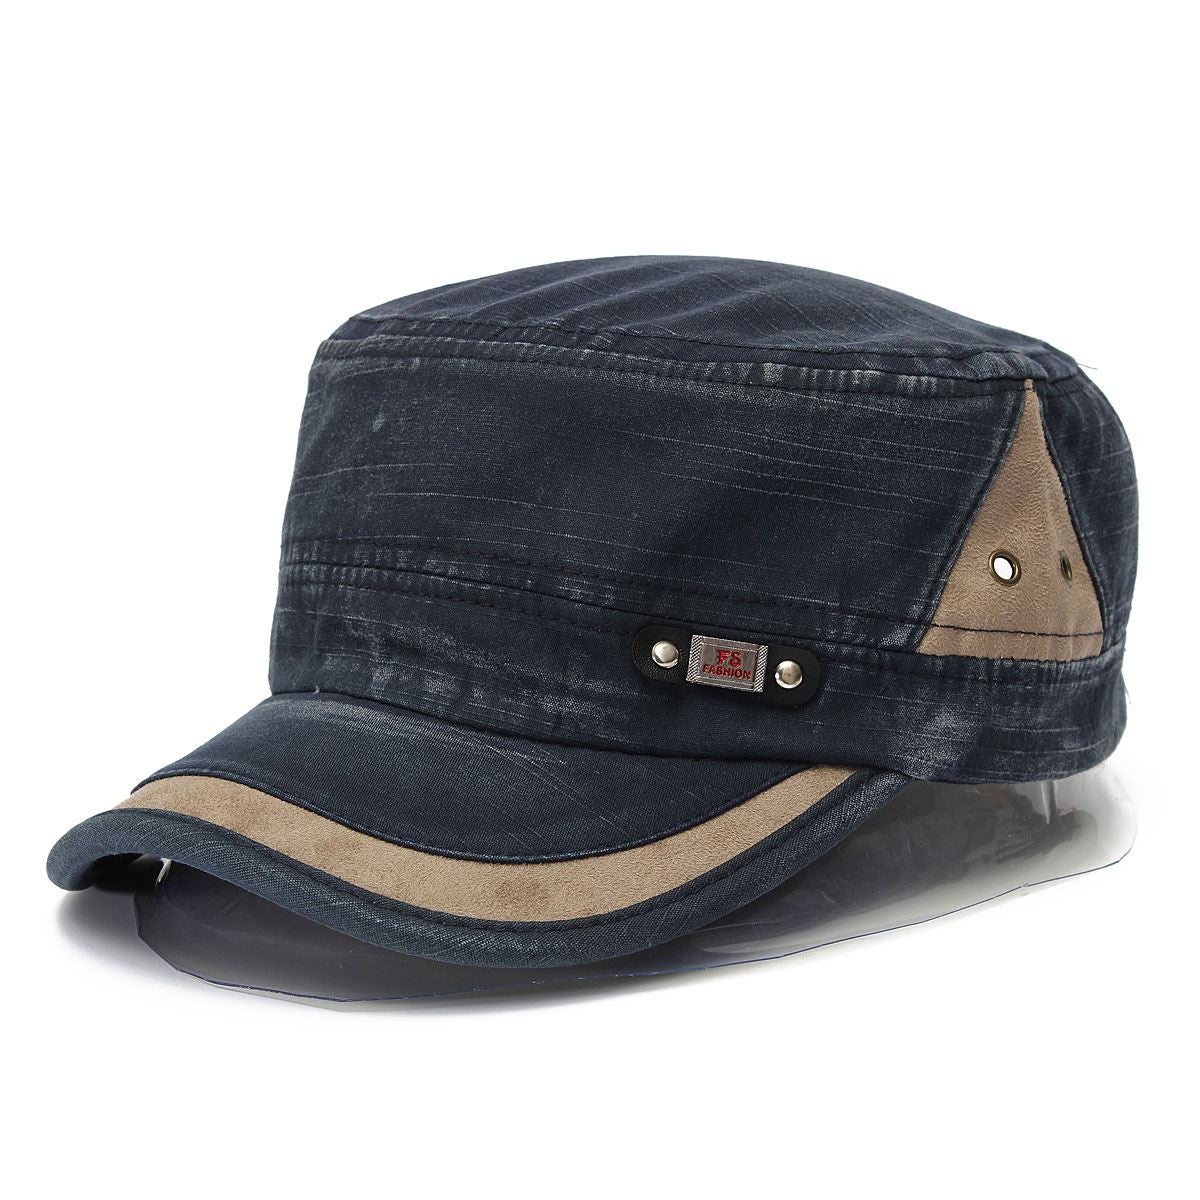 Adjustable Casquette Hat - awashdress